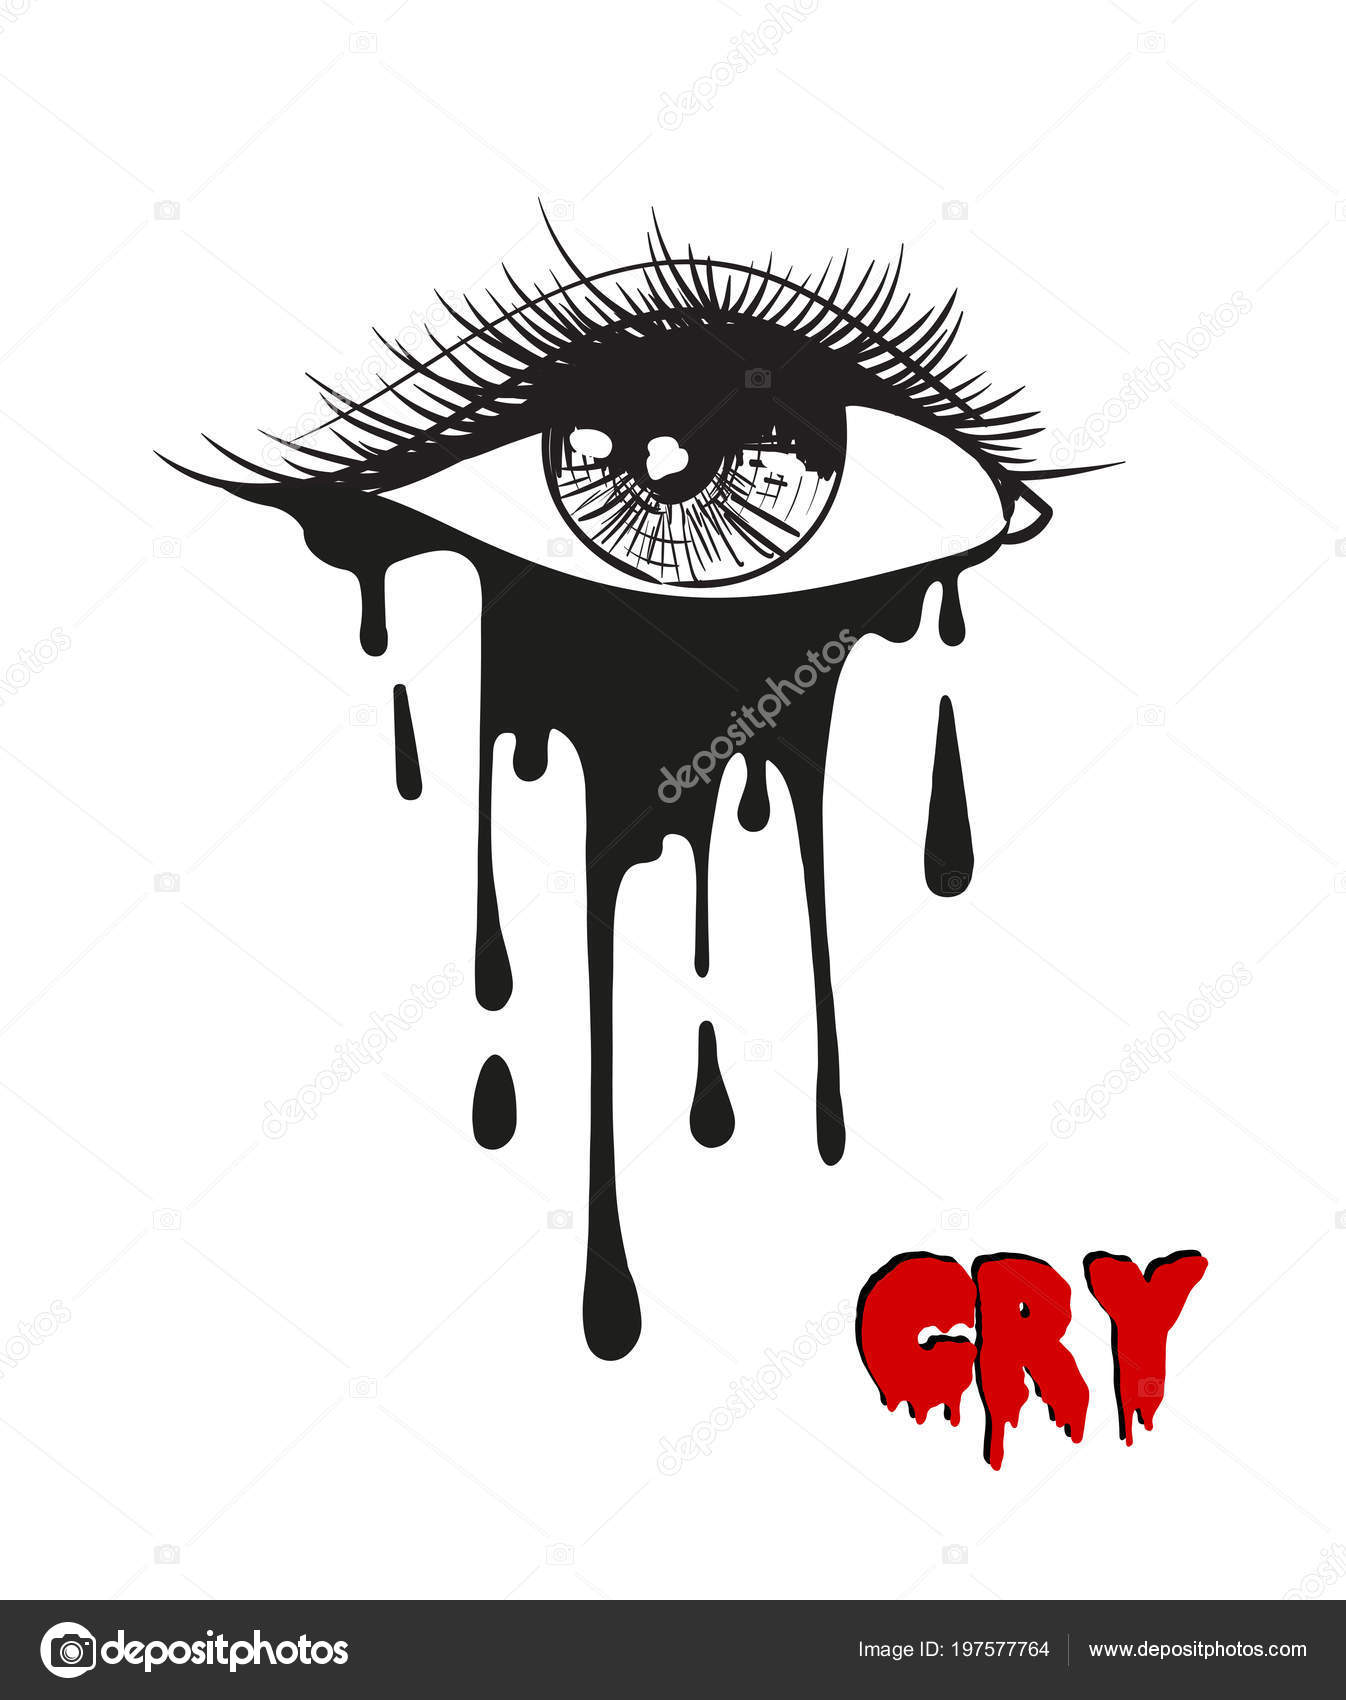 Heartbroken Cry Eye Draw : heartbroken, Crying, Drawing, Stock, Icon,, Royalty, Tears, Images, Download, Depositphotos®